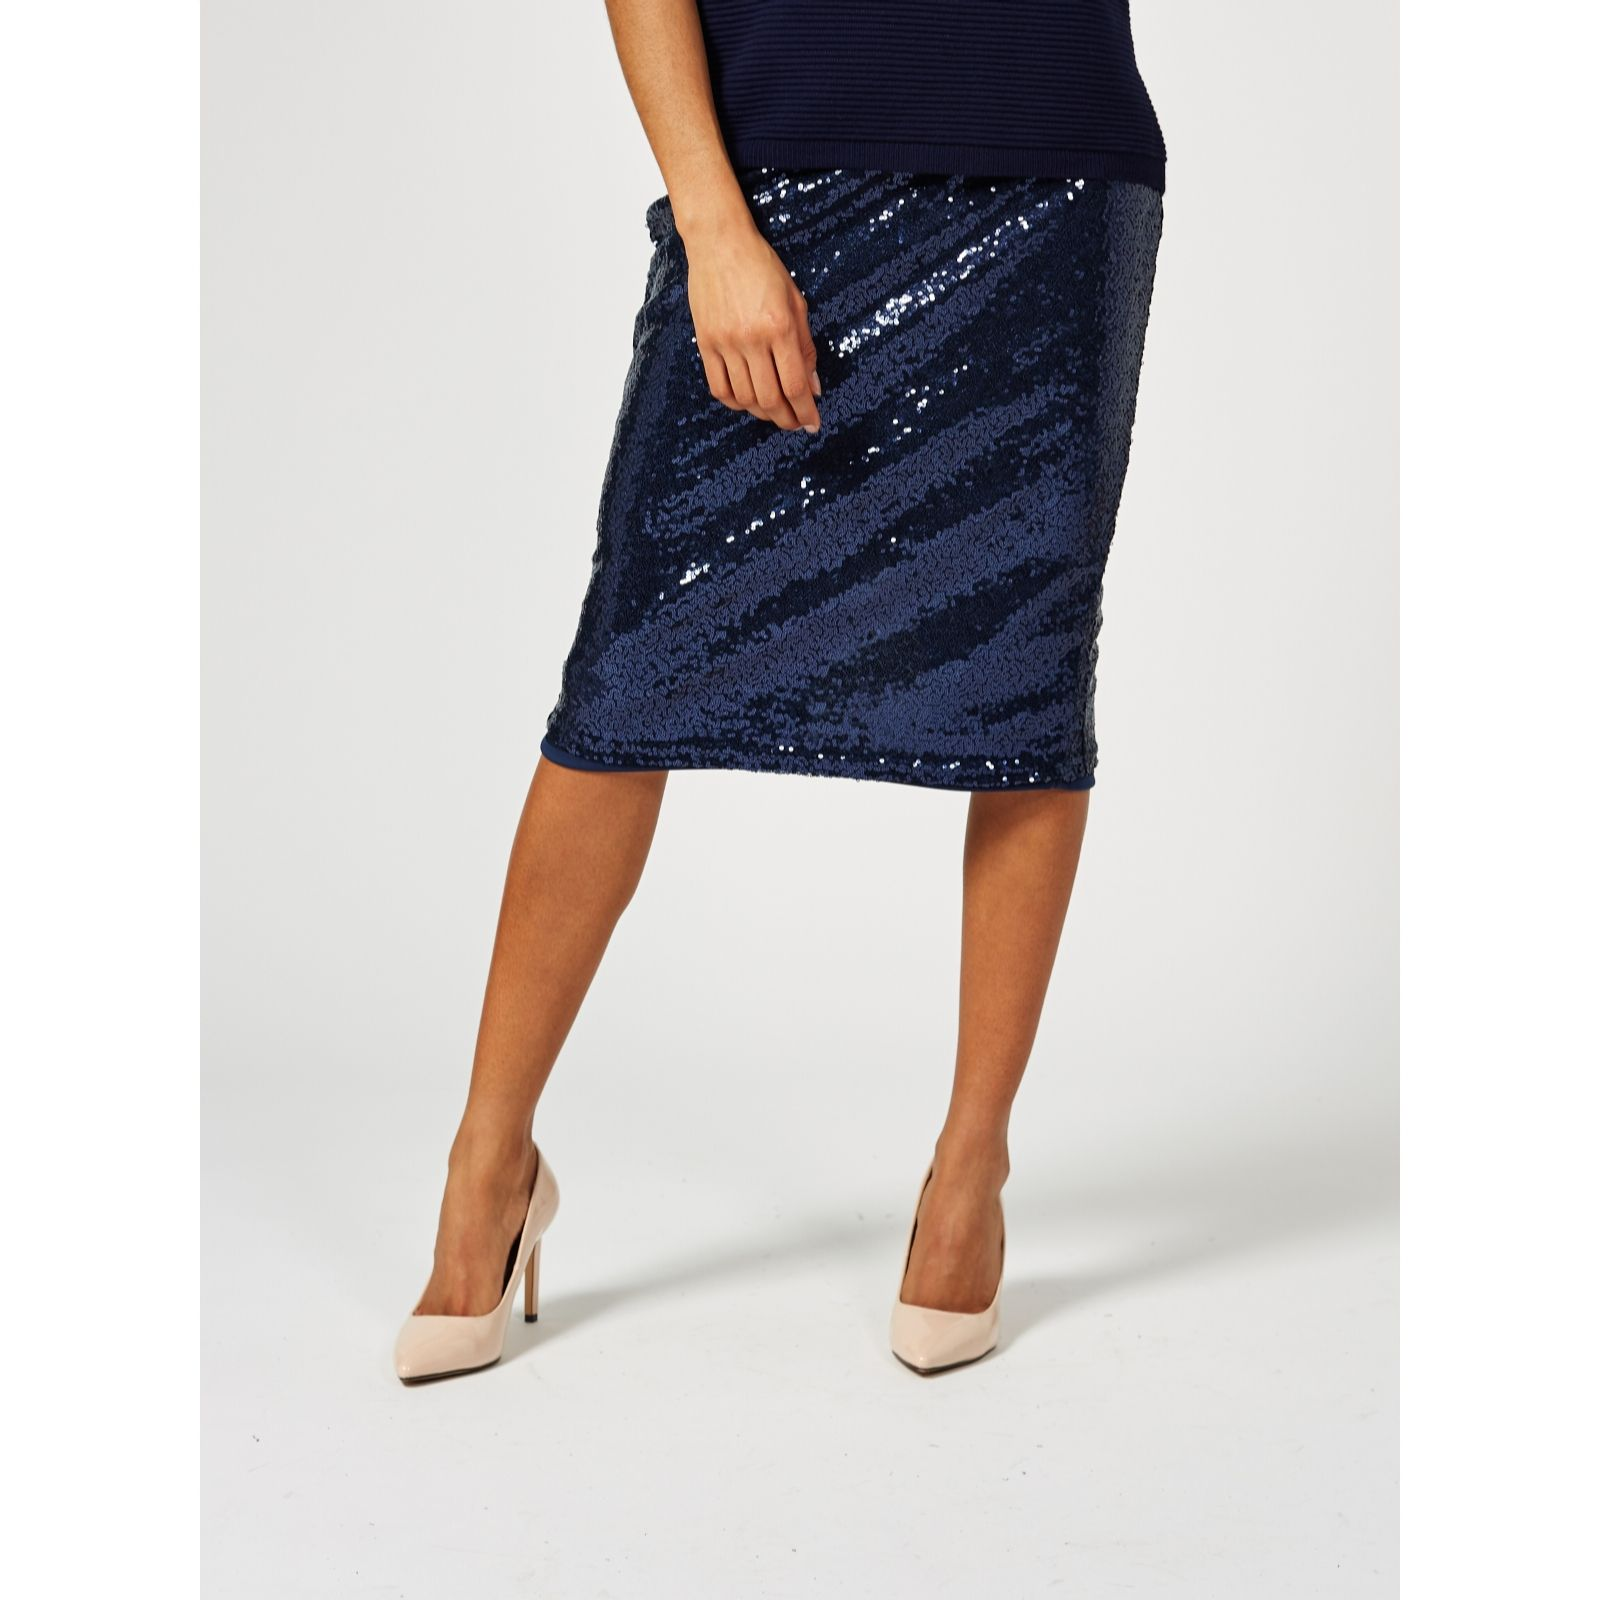 90e60381b8 Ben de Lisi Sequin Pencil Skirt - QVC UK